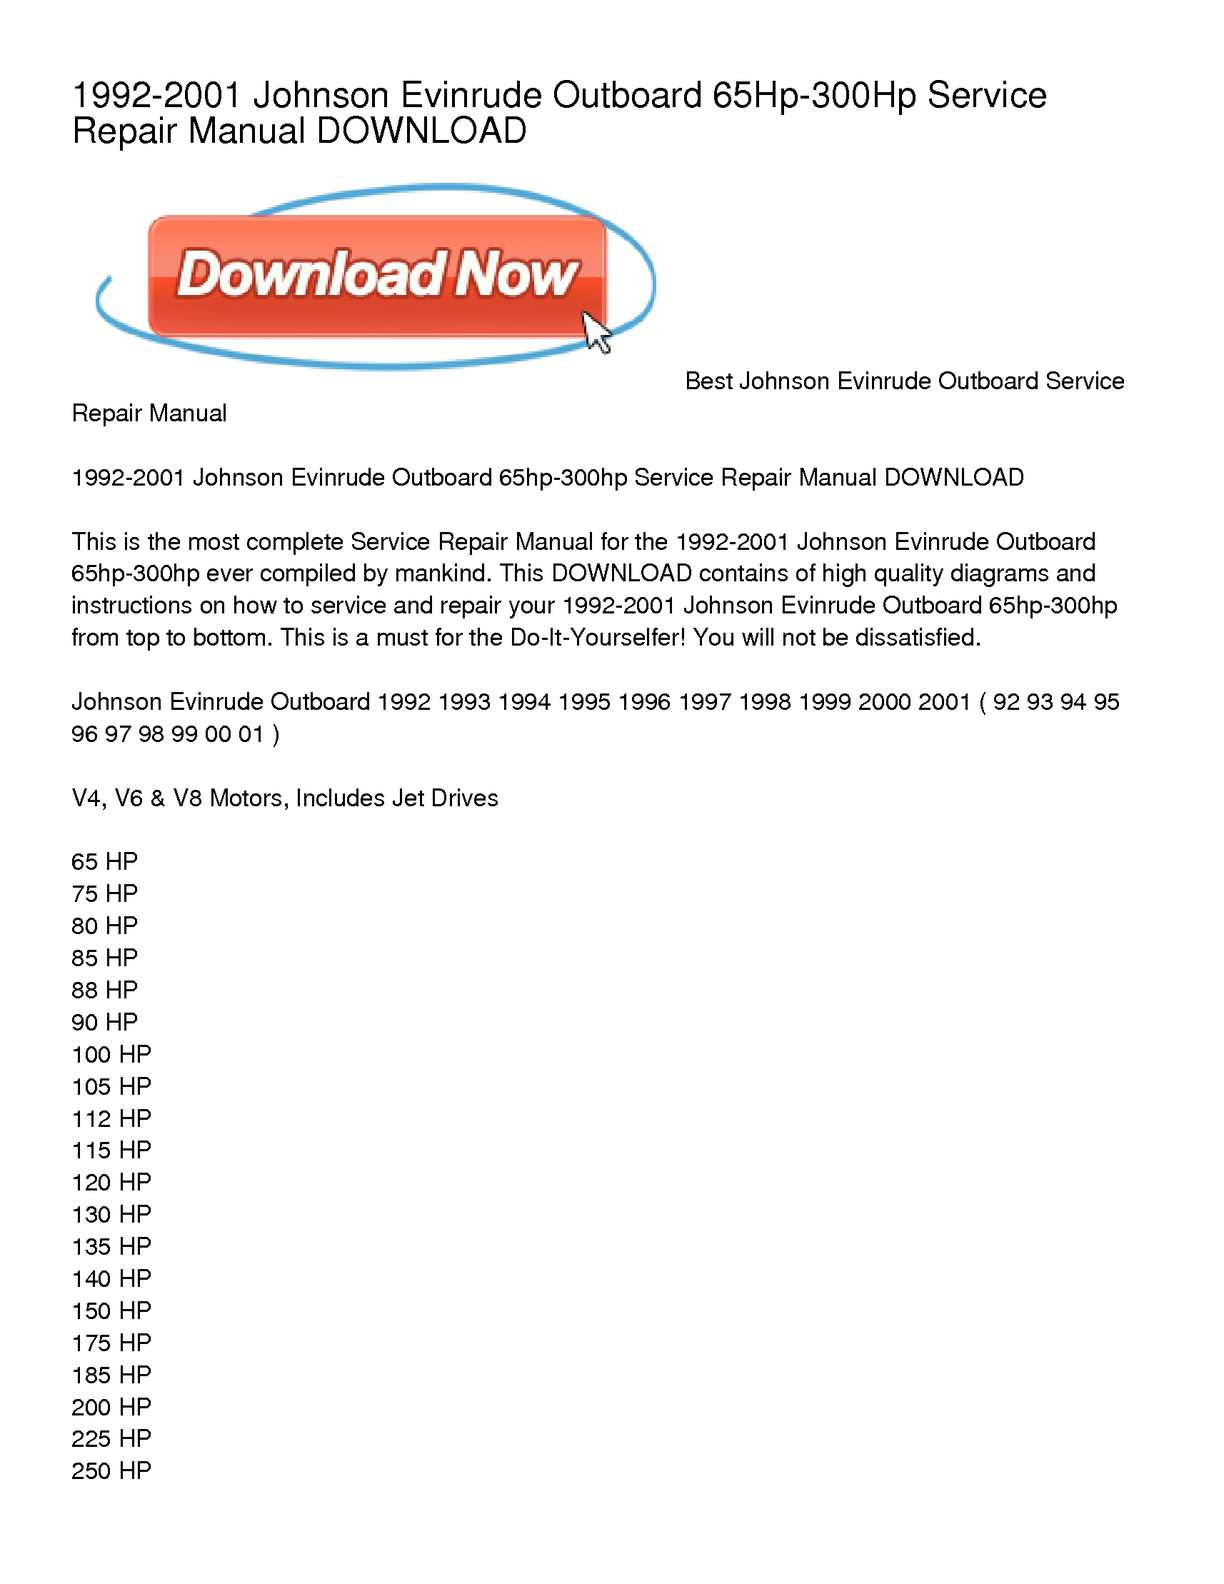 Calaméo - 1992-2001 Johnson Evinrude Outboard 65Hp-300Hp Service Repair  Manual DOWNLOAD